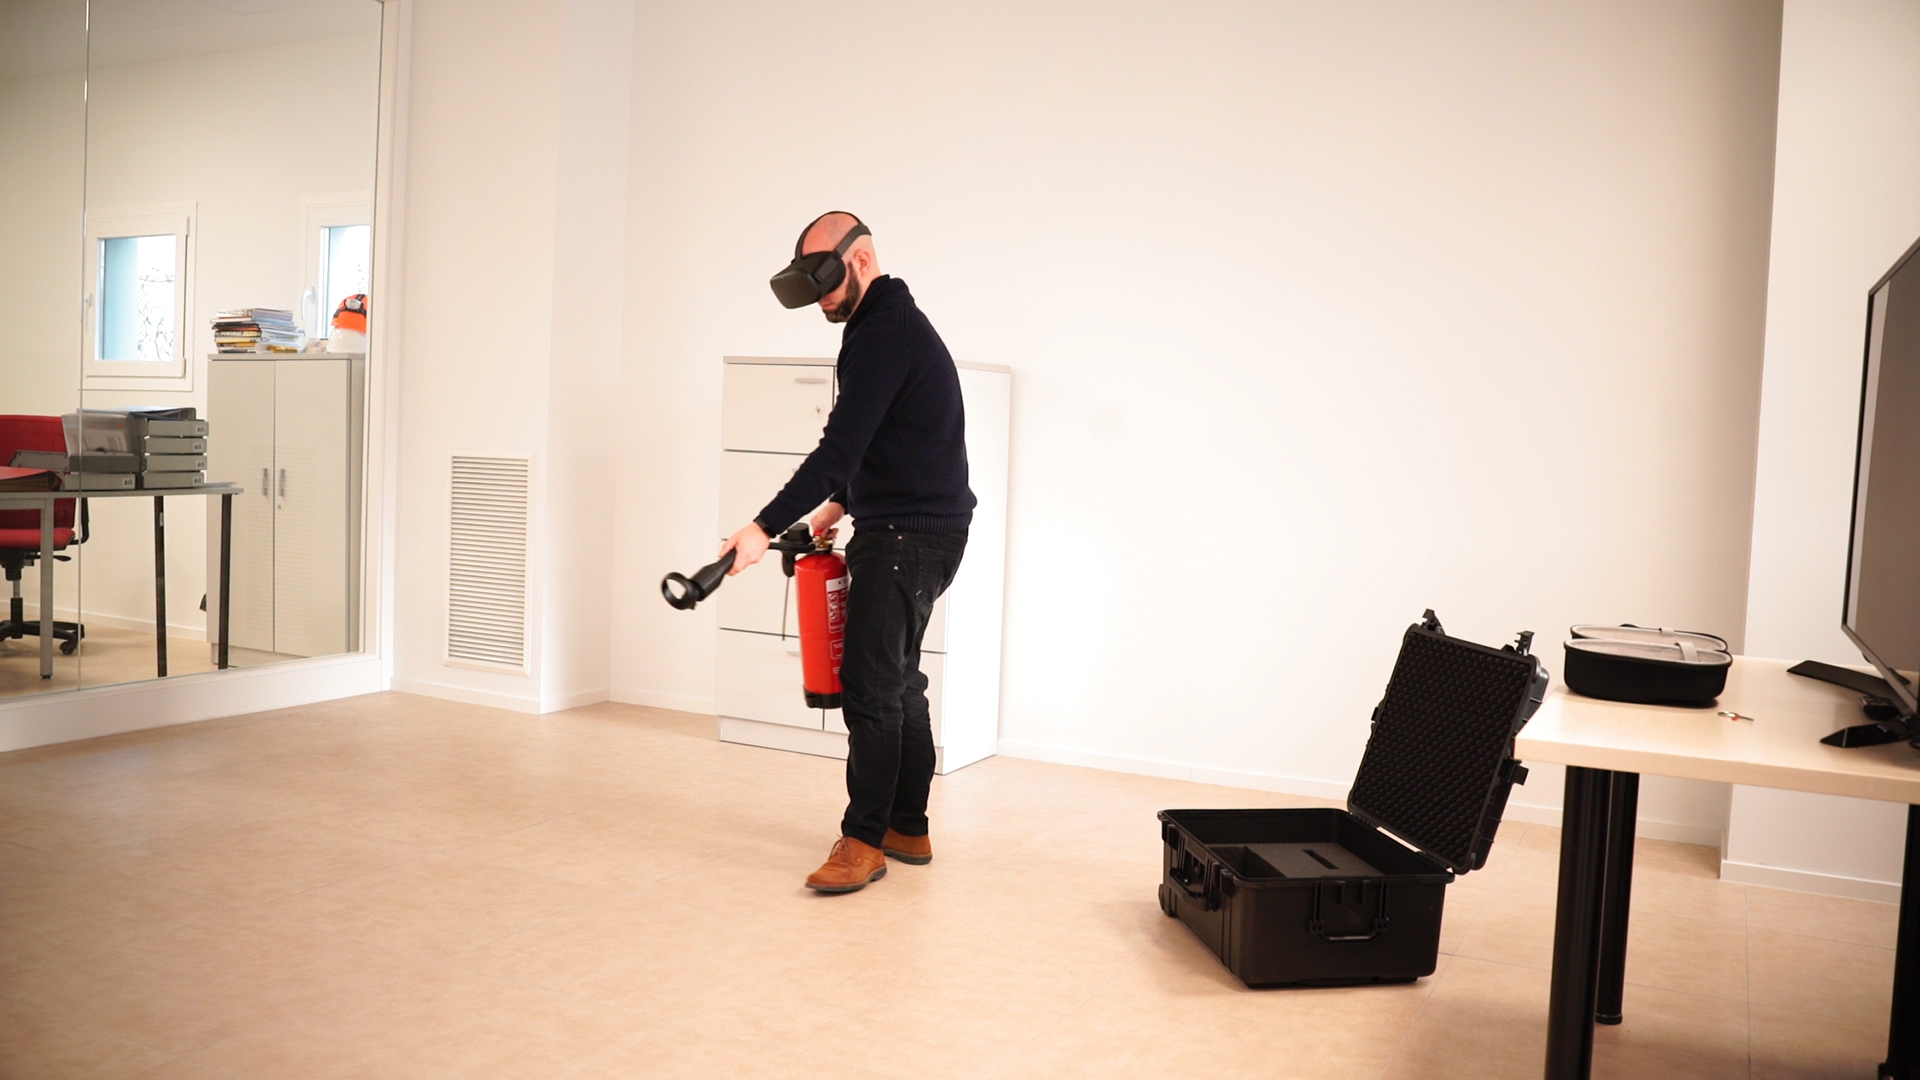 Luggage and fire extinguisher VR